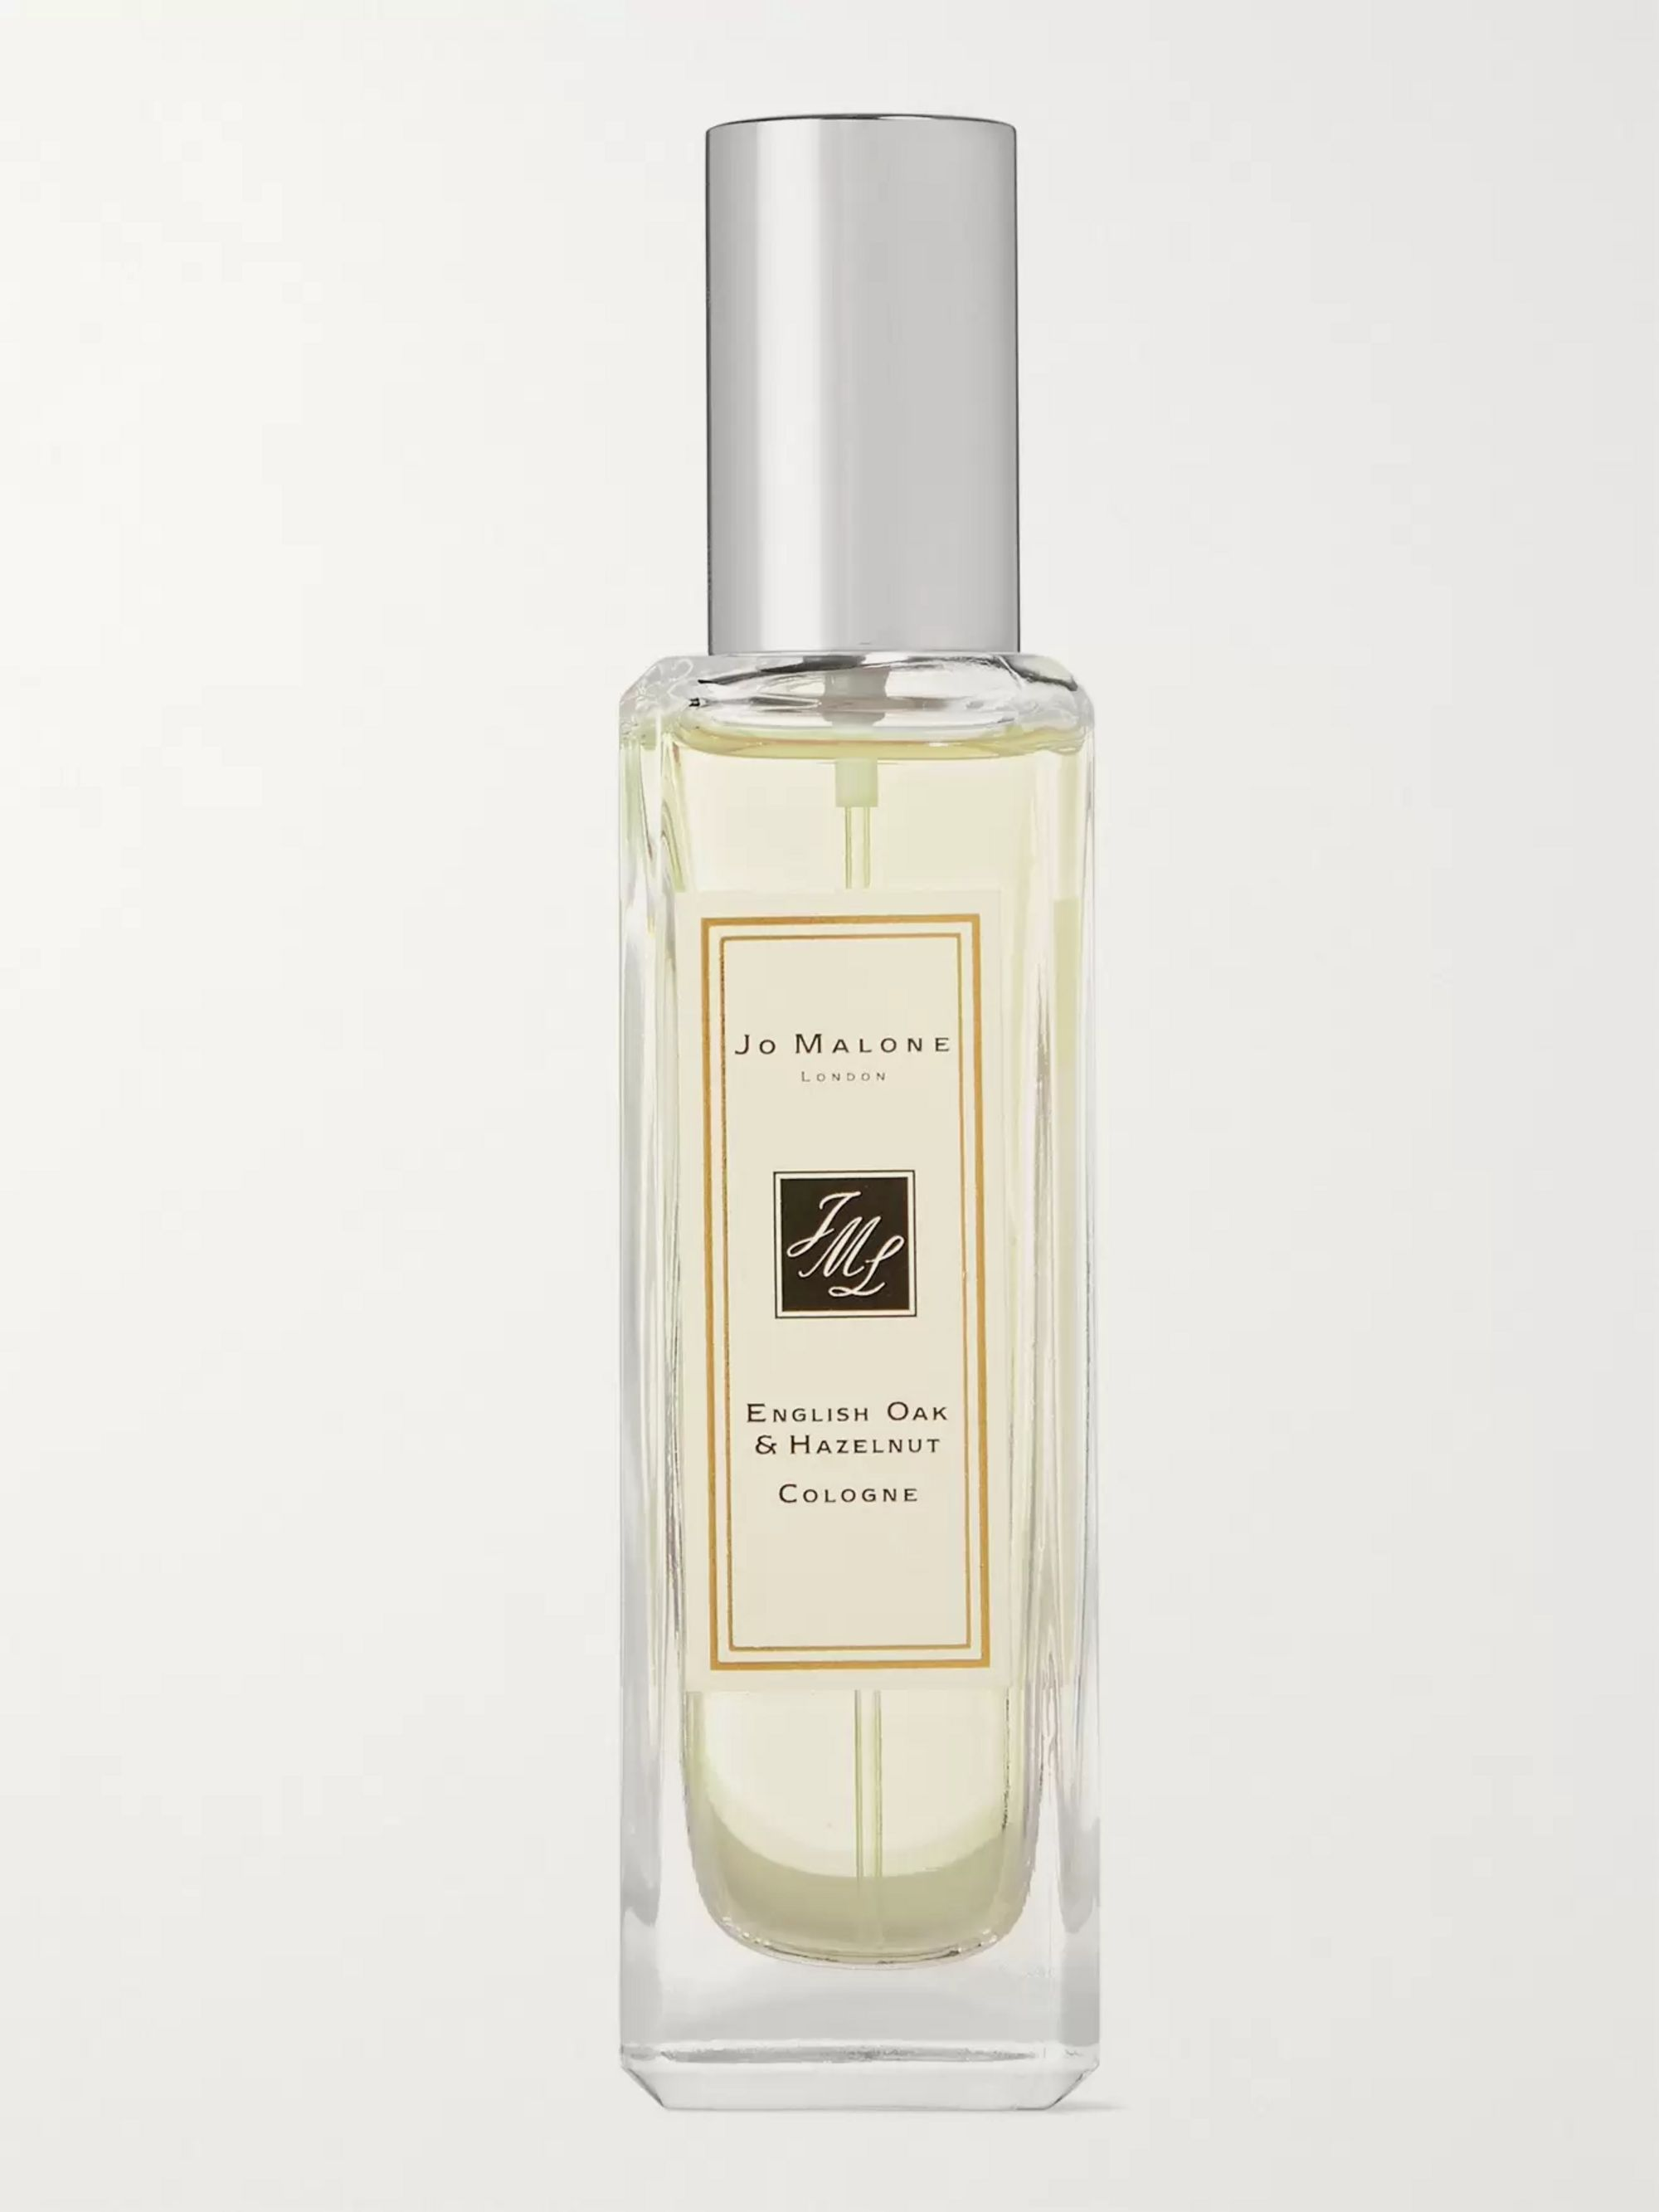 Jo Malone London English Oak and Hazelnut Cologne, 30ml